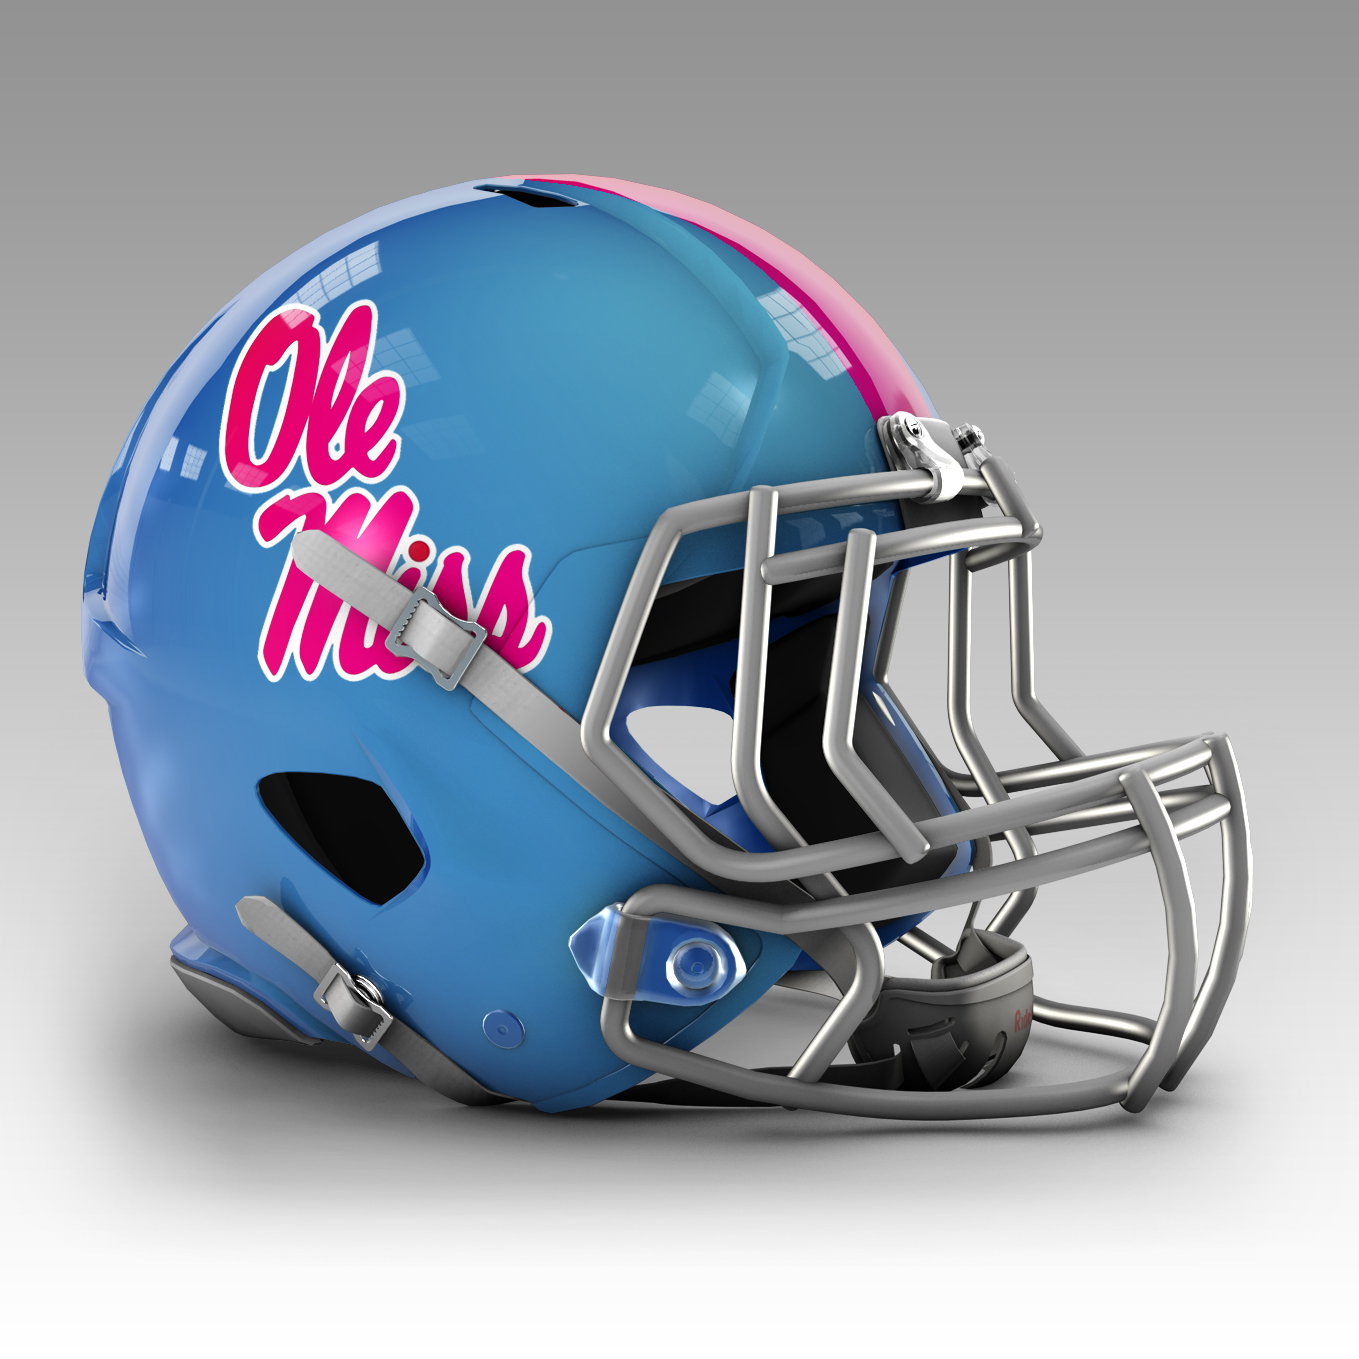 Breast Cancer Awareness  SEC helmet concepts 204280564